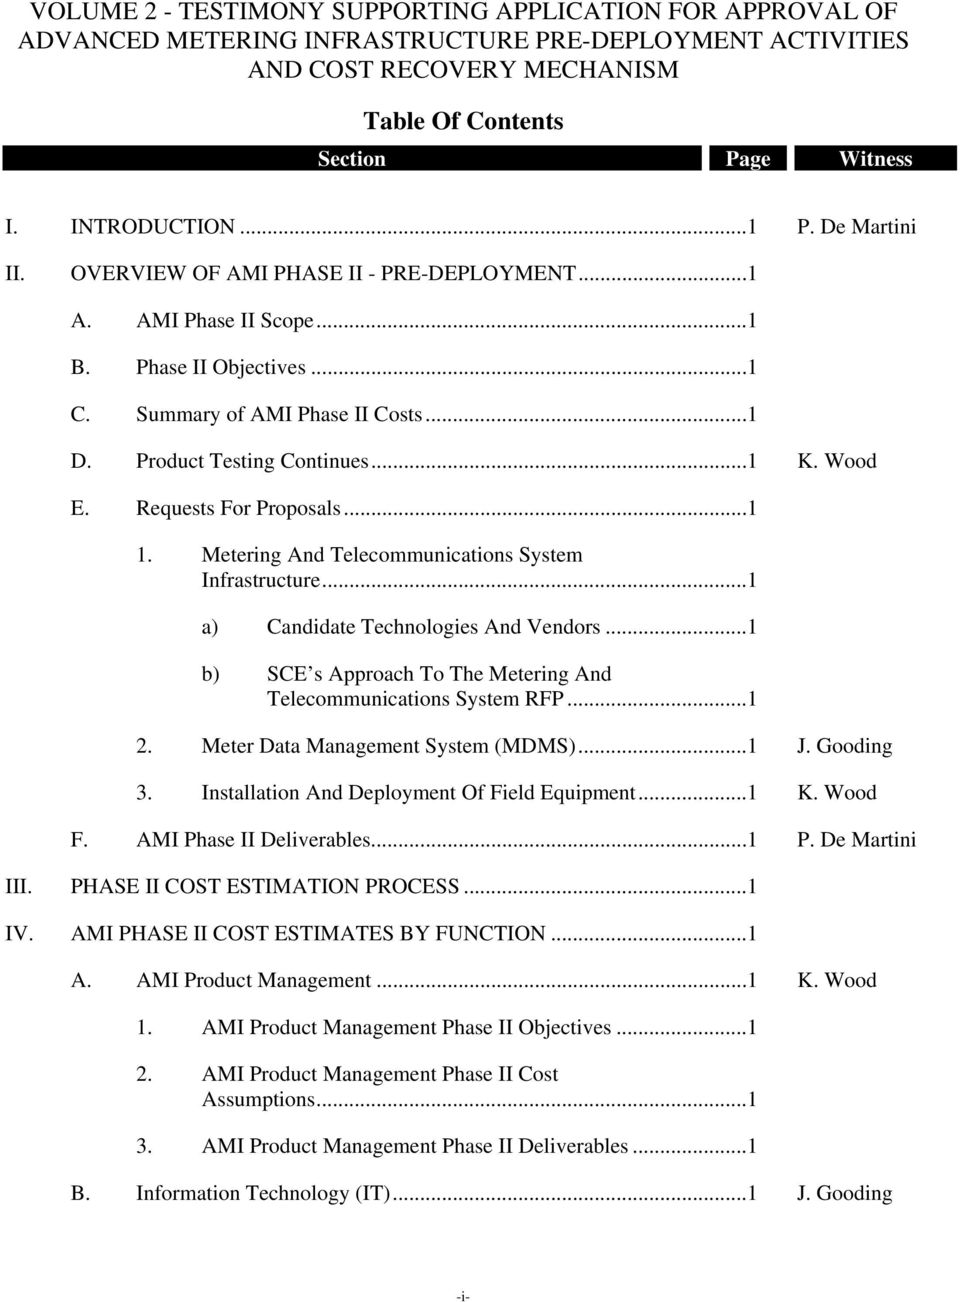 Volume 2 AMI Phase II Pre-Deployment Activities and Cost